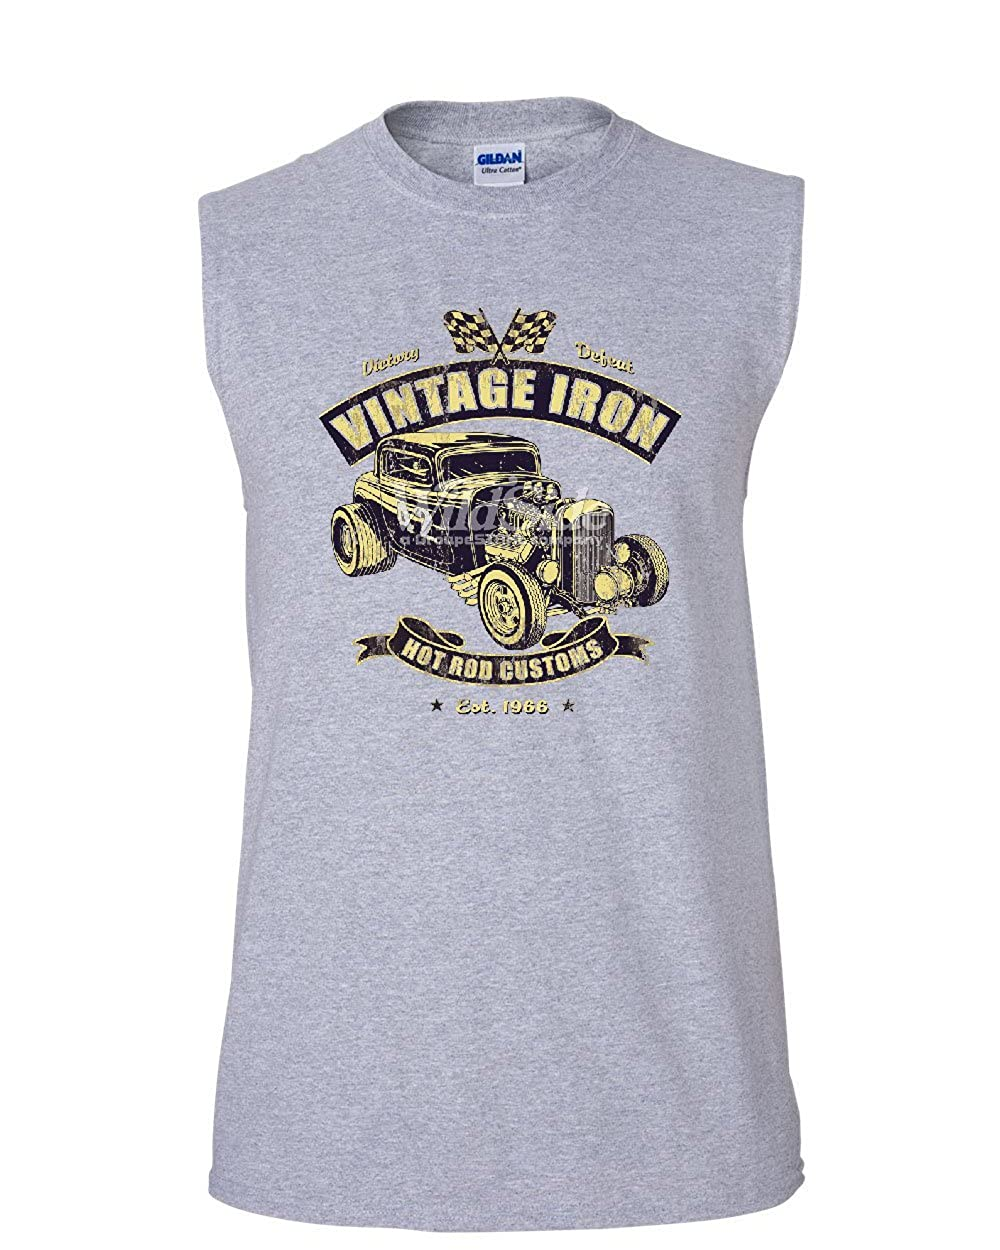 Tee Hunt Vintage Iron Hot Rod Customs Muscle Shirt Retro Muscle Car Route 66 Sleeveless